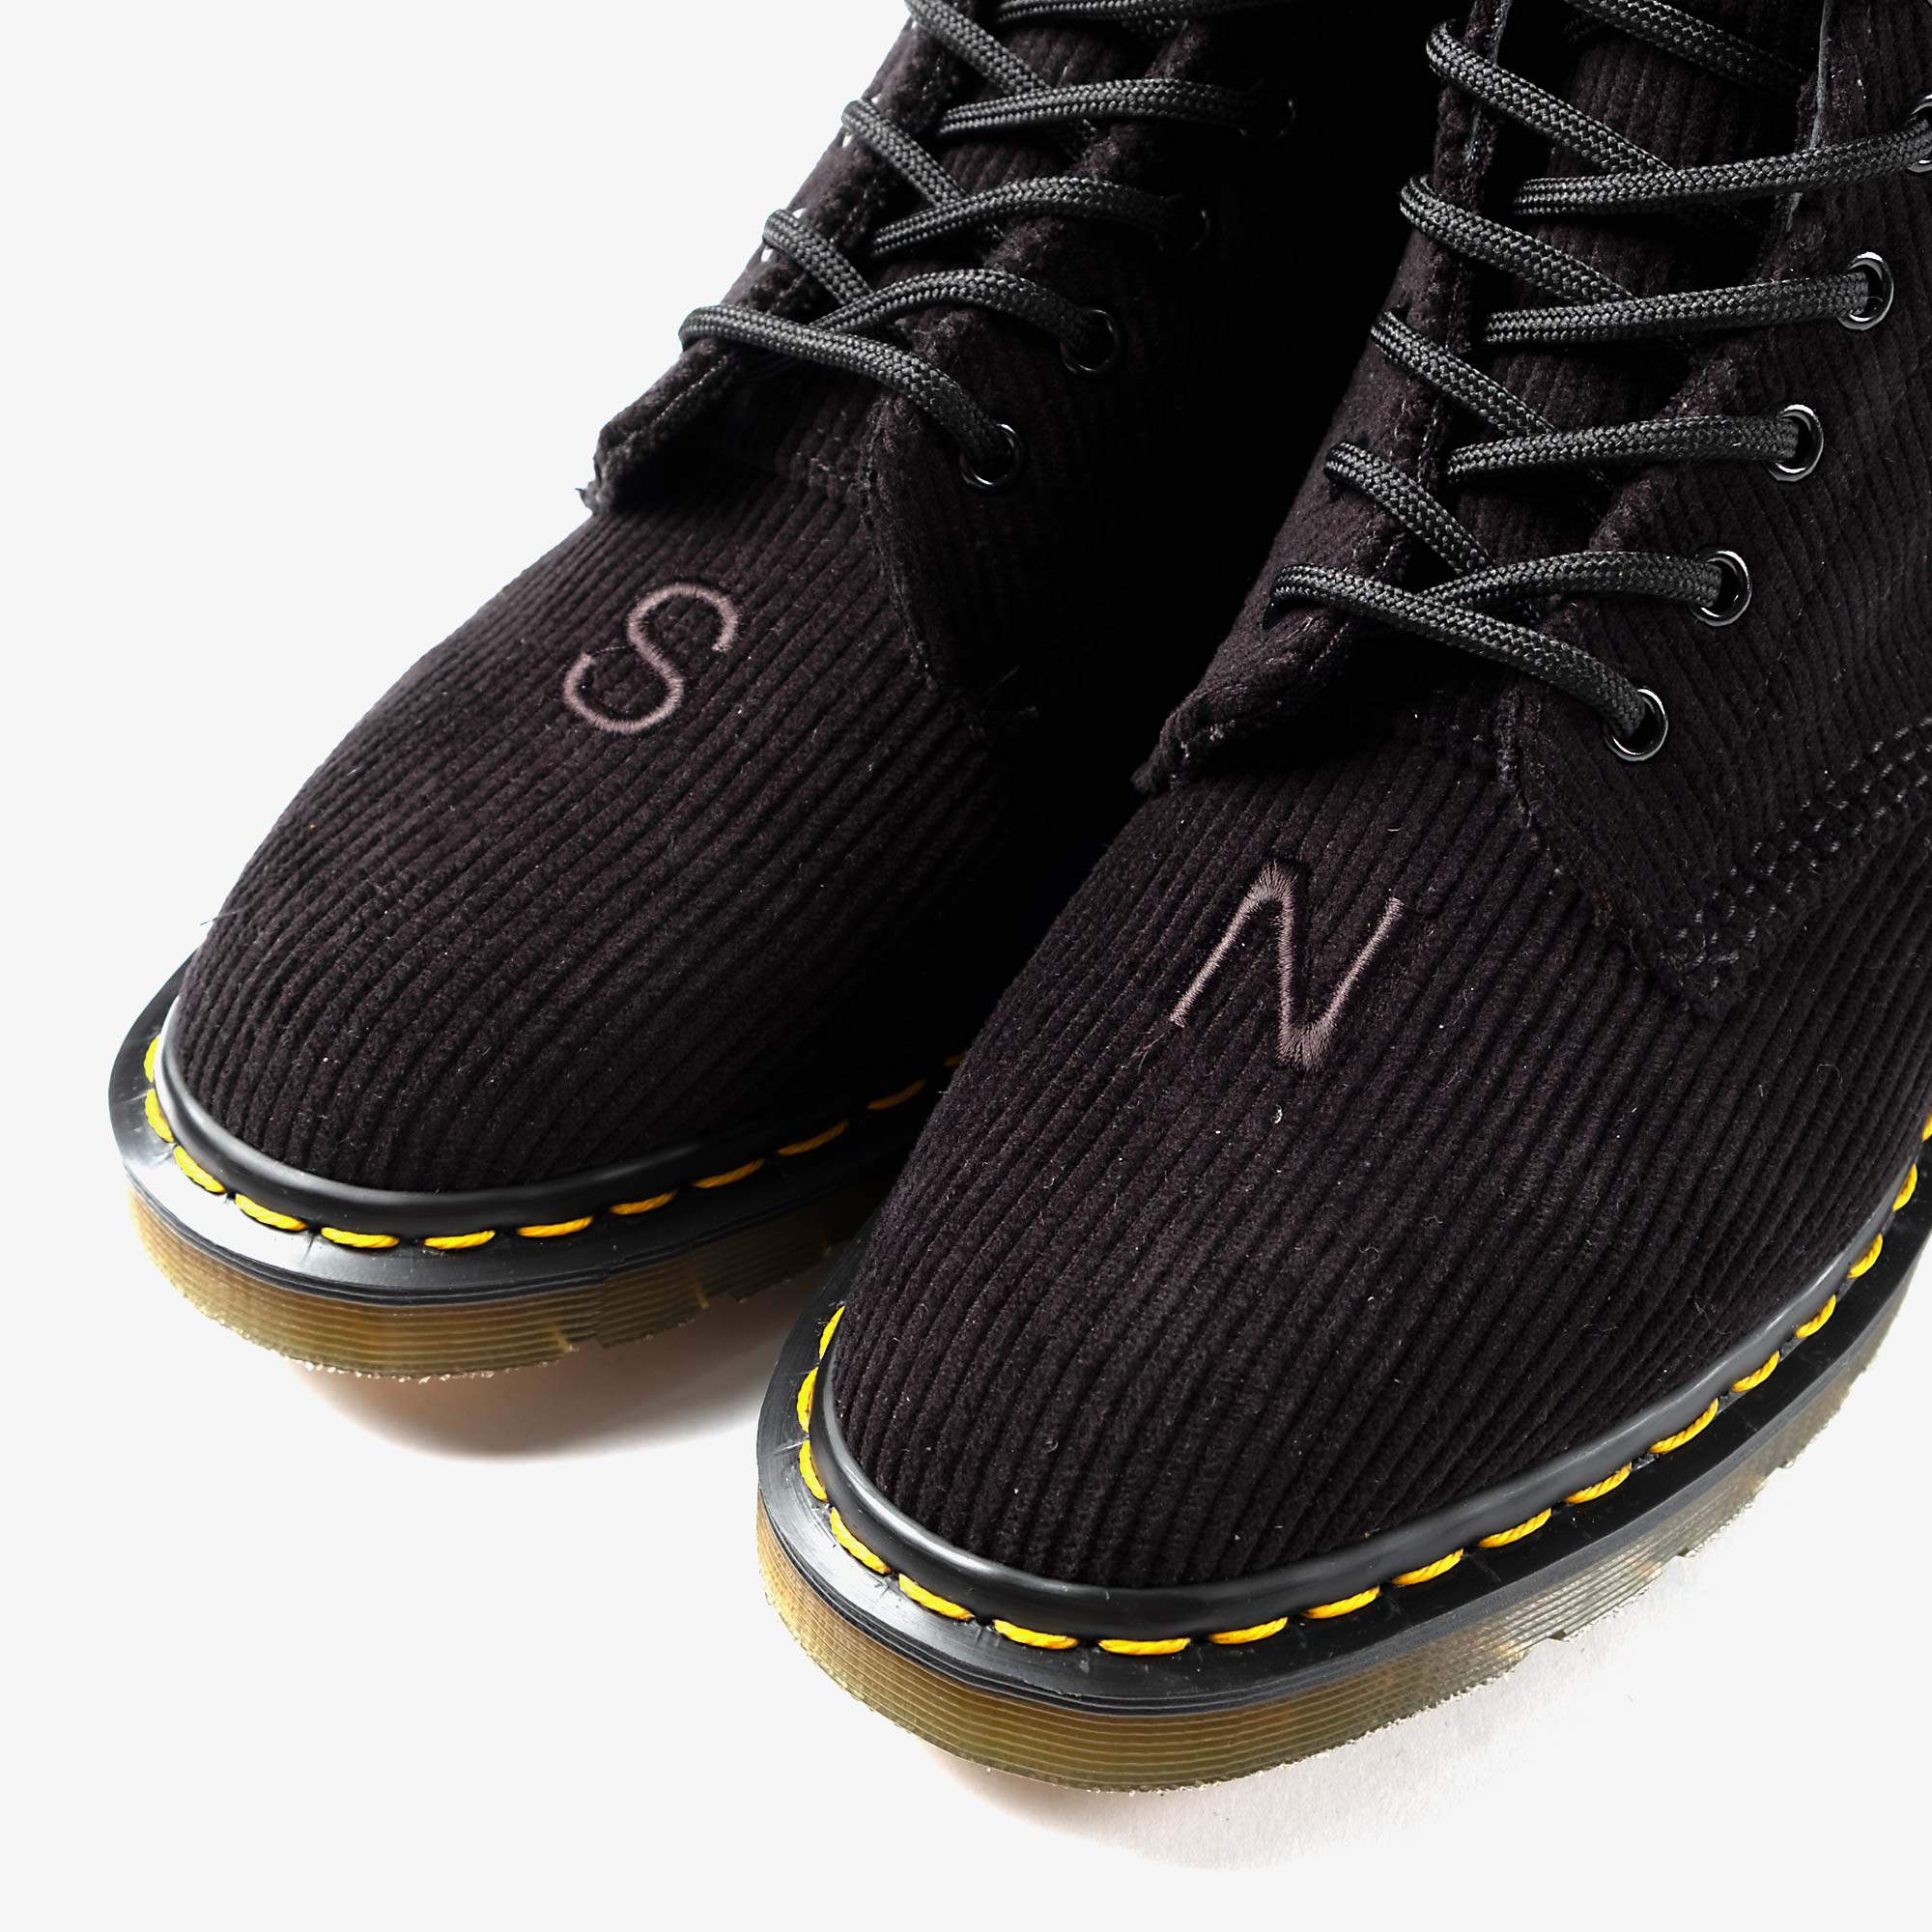 Undercover Undercover x Dr. Martens 1460 Corduroy - Black 6